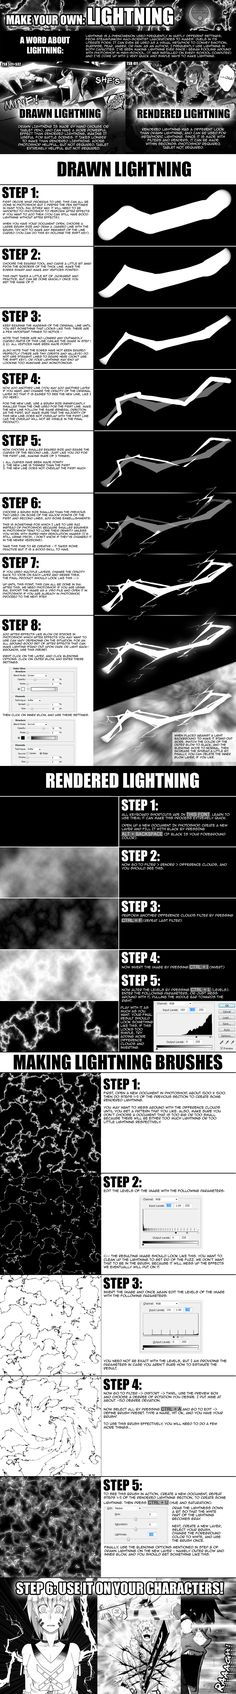 TOW-2: Lightning Tutorial by verticalfish.deviantart.com on @deviantART